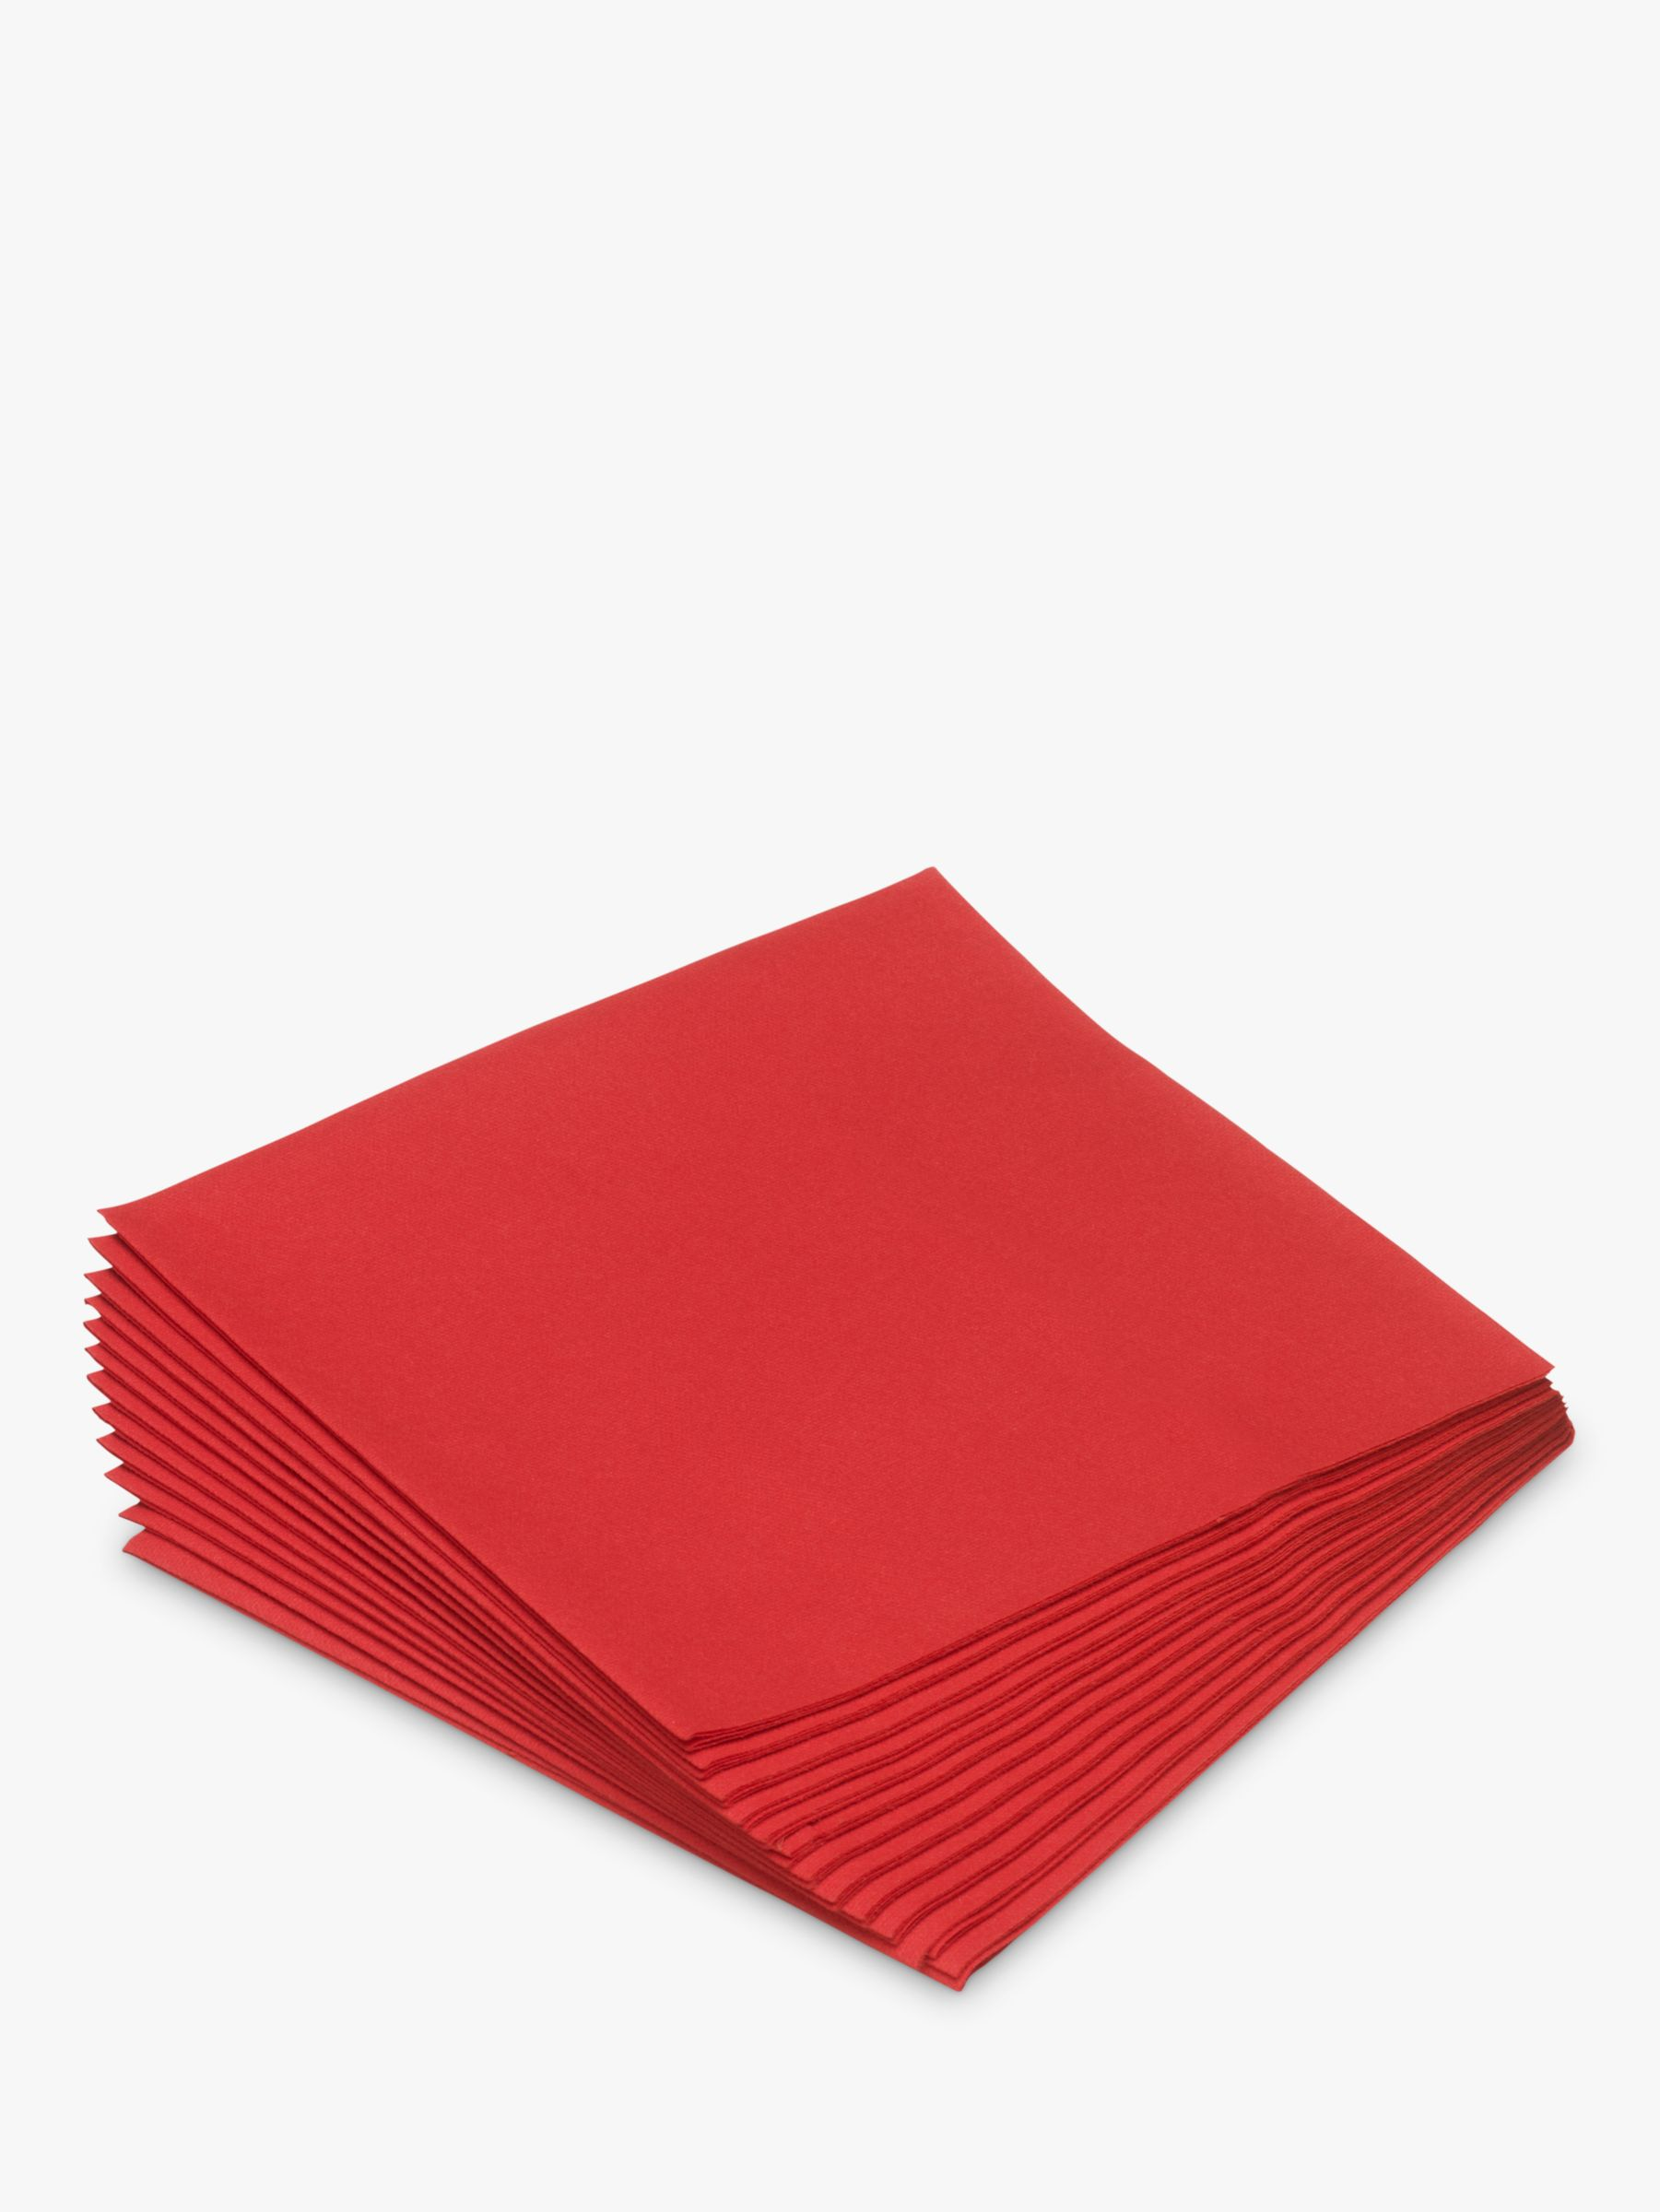 Duni Duni Paper Napkins, Pack of 12, Red